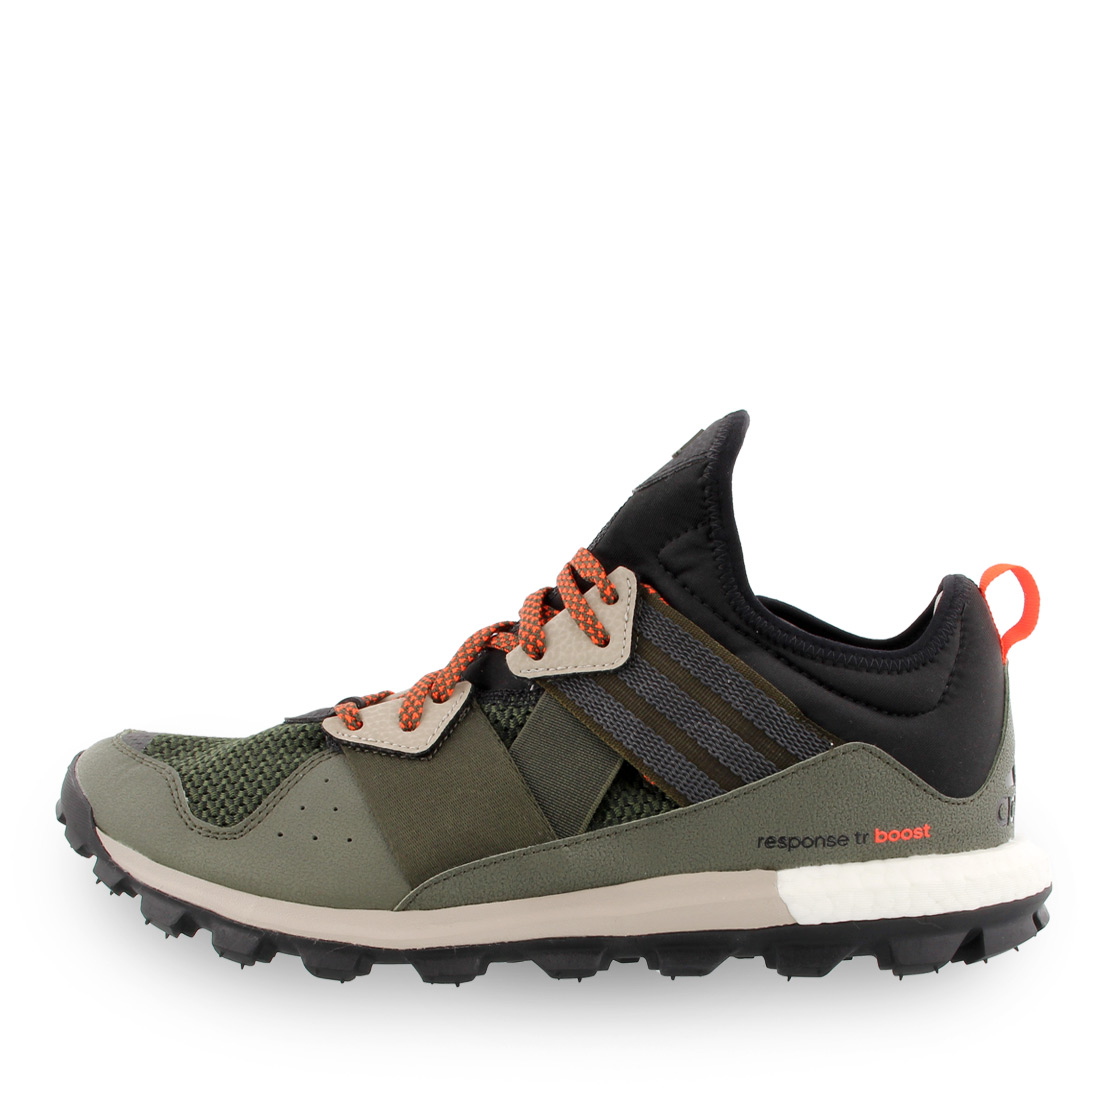 Adidas Response Trail Boost Shoe Mens Apparel At Vickerey